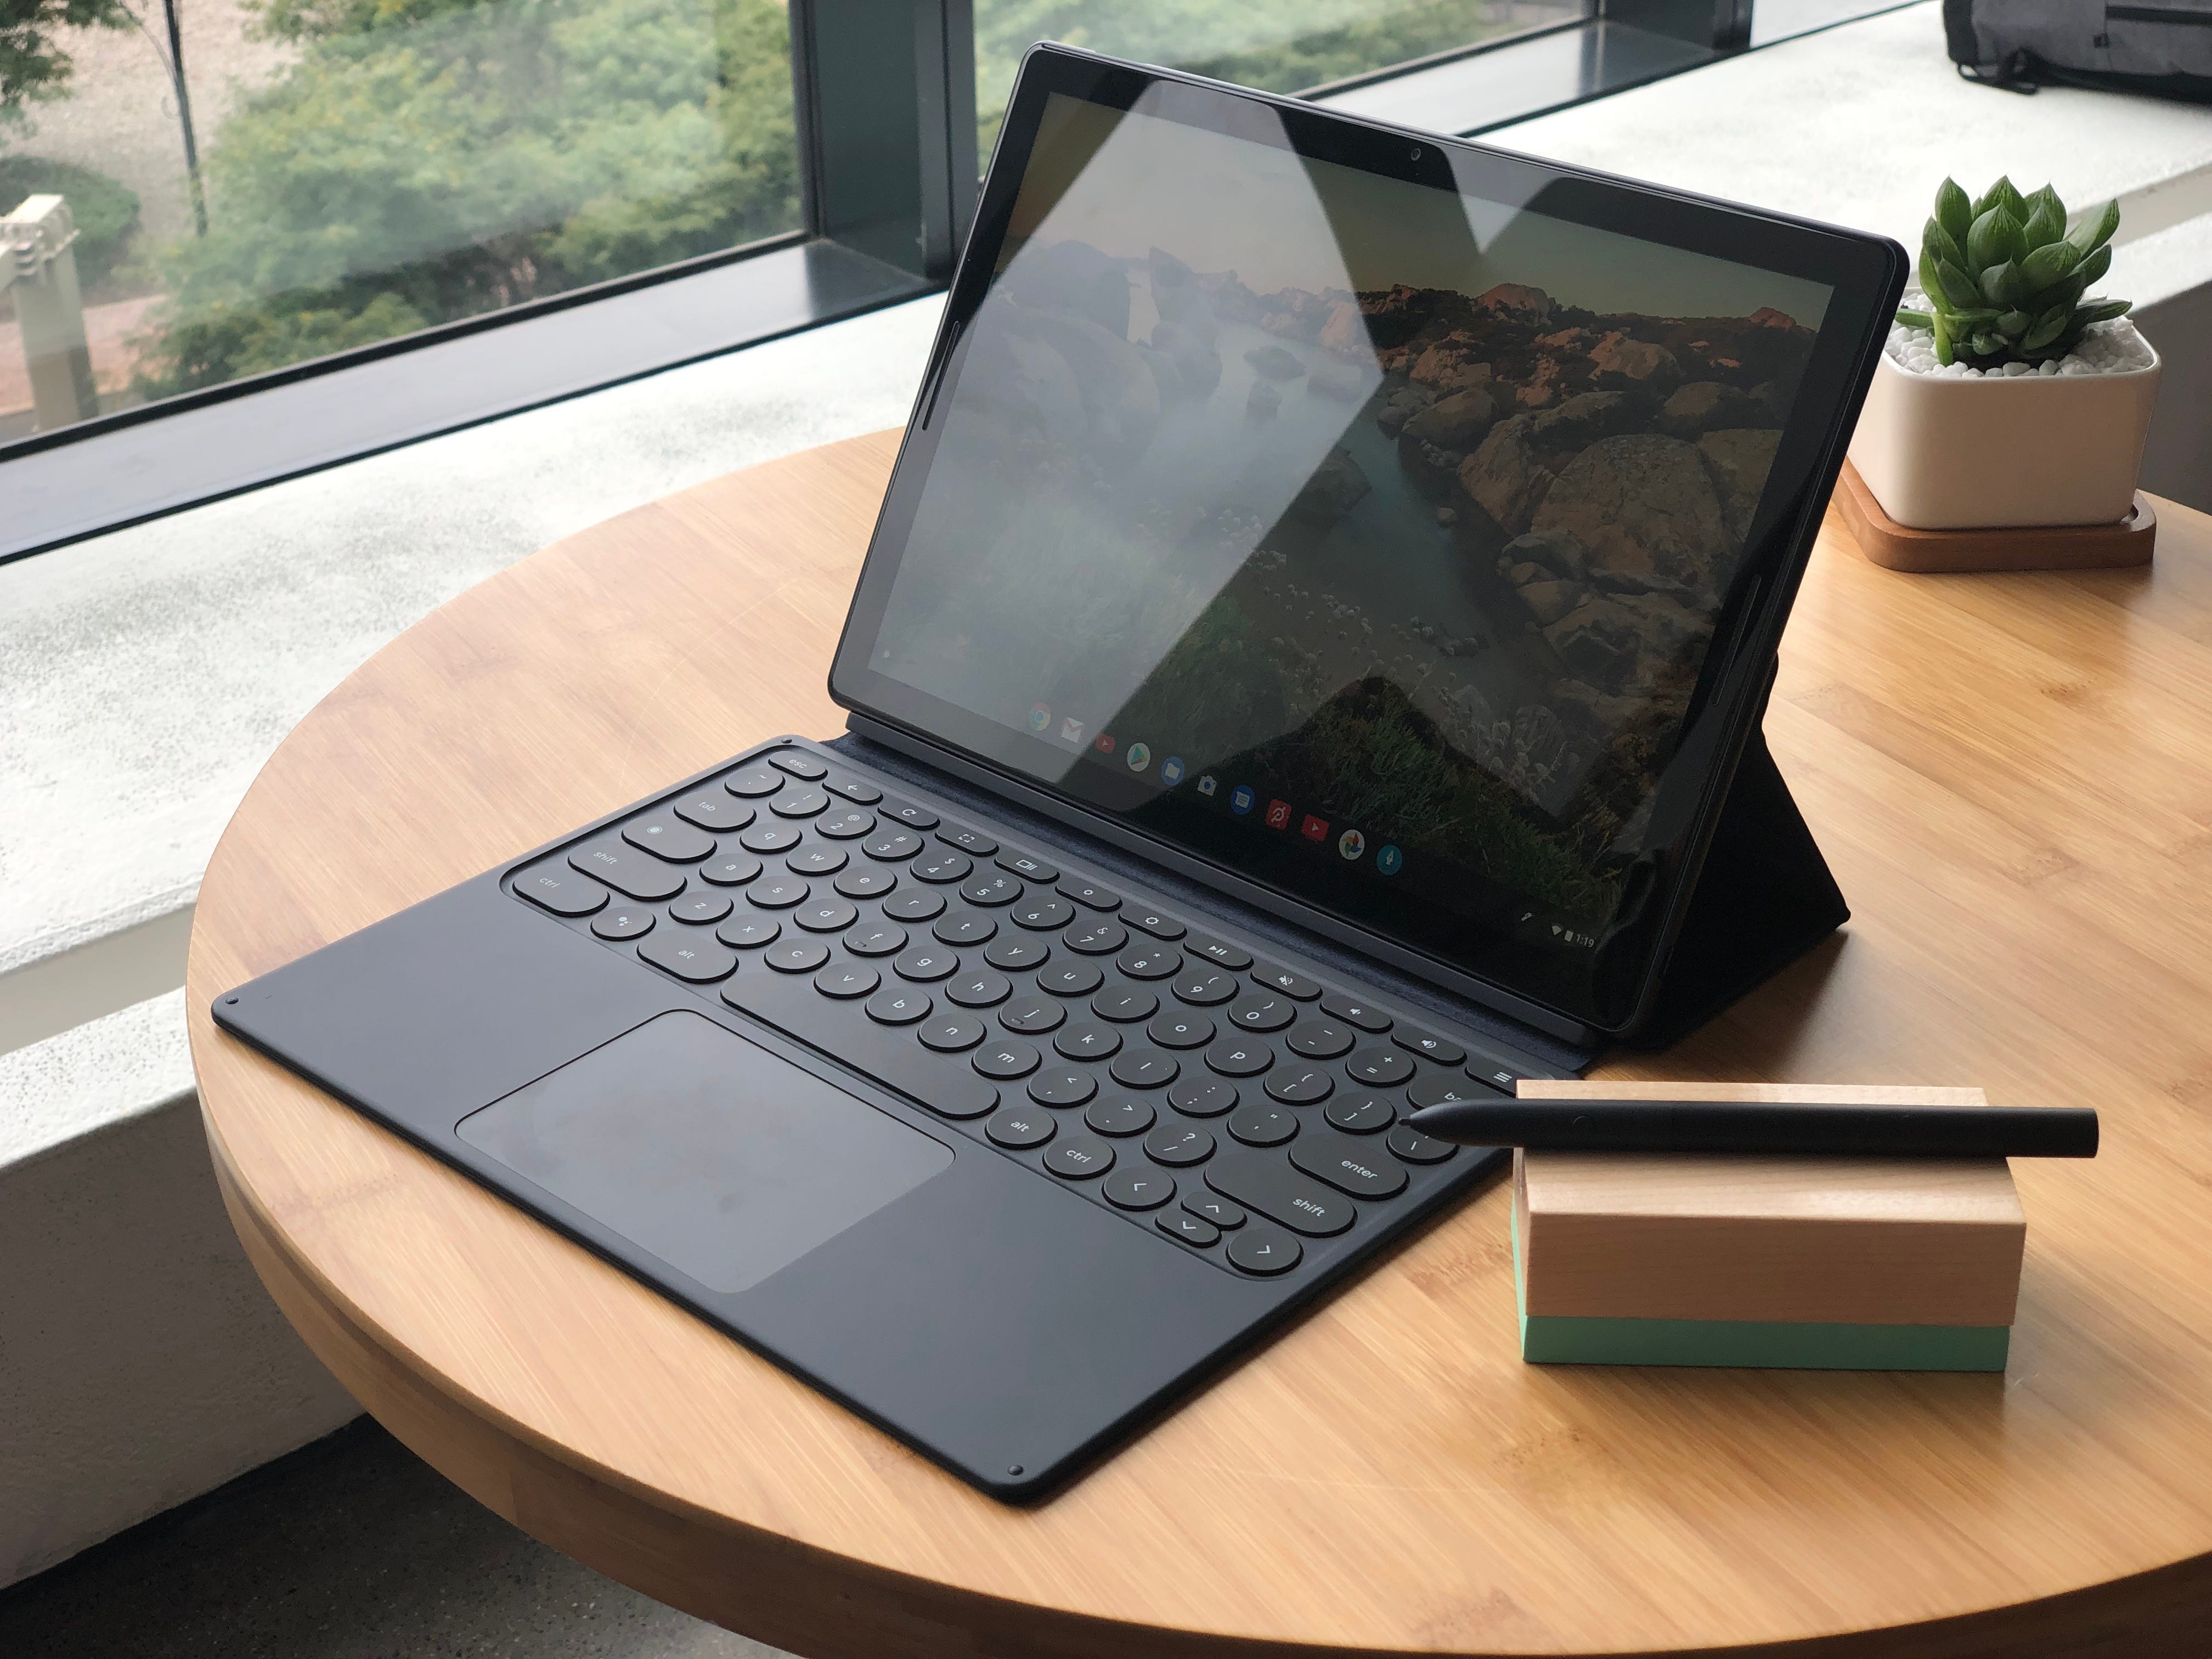 Google's Pixel Slate with keyboard and pen.